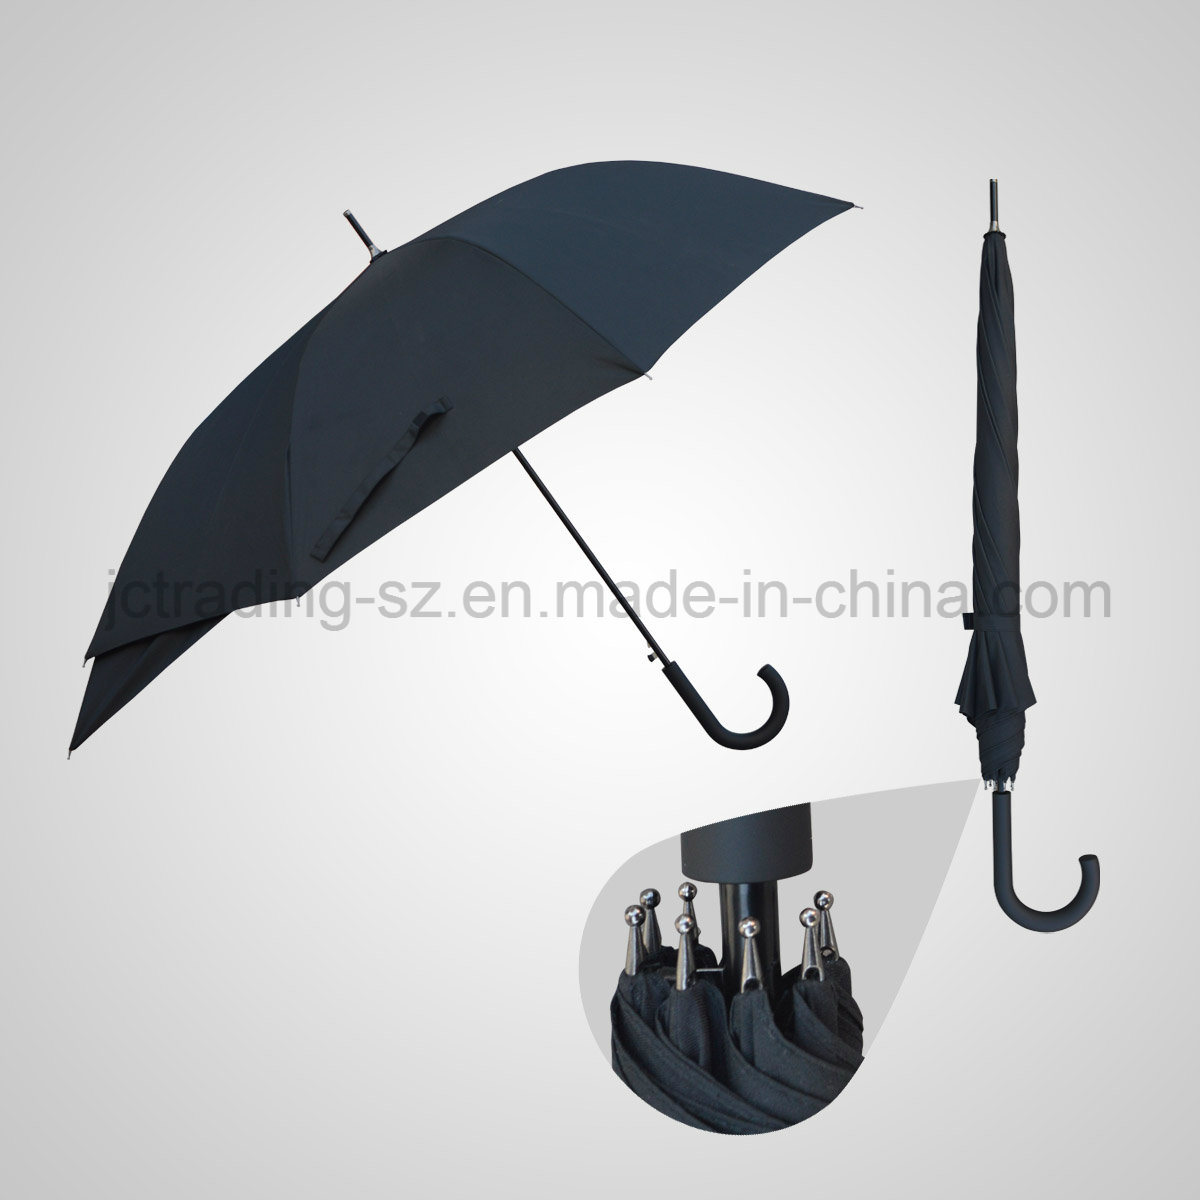 Automatic Straight Abnormity Shape Umbrella (JL-AAB101)